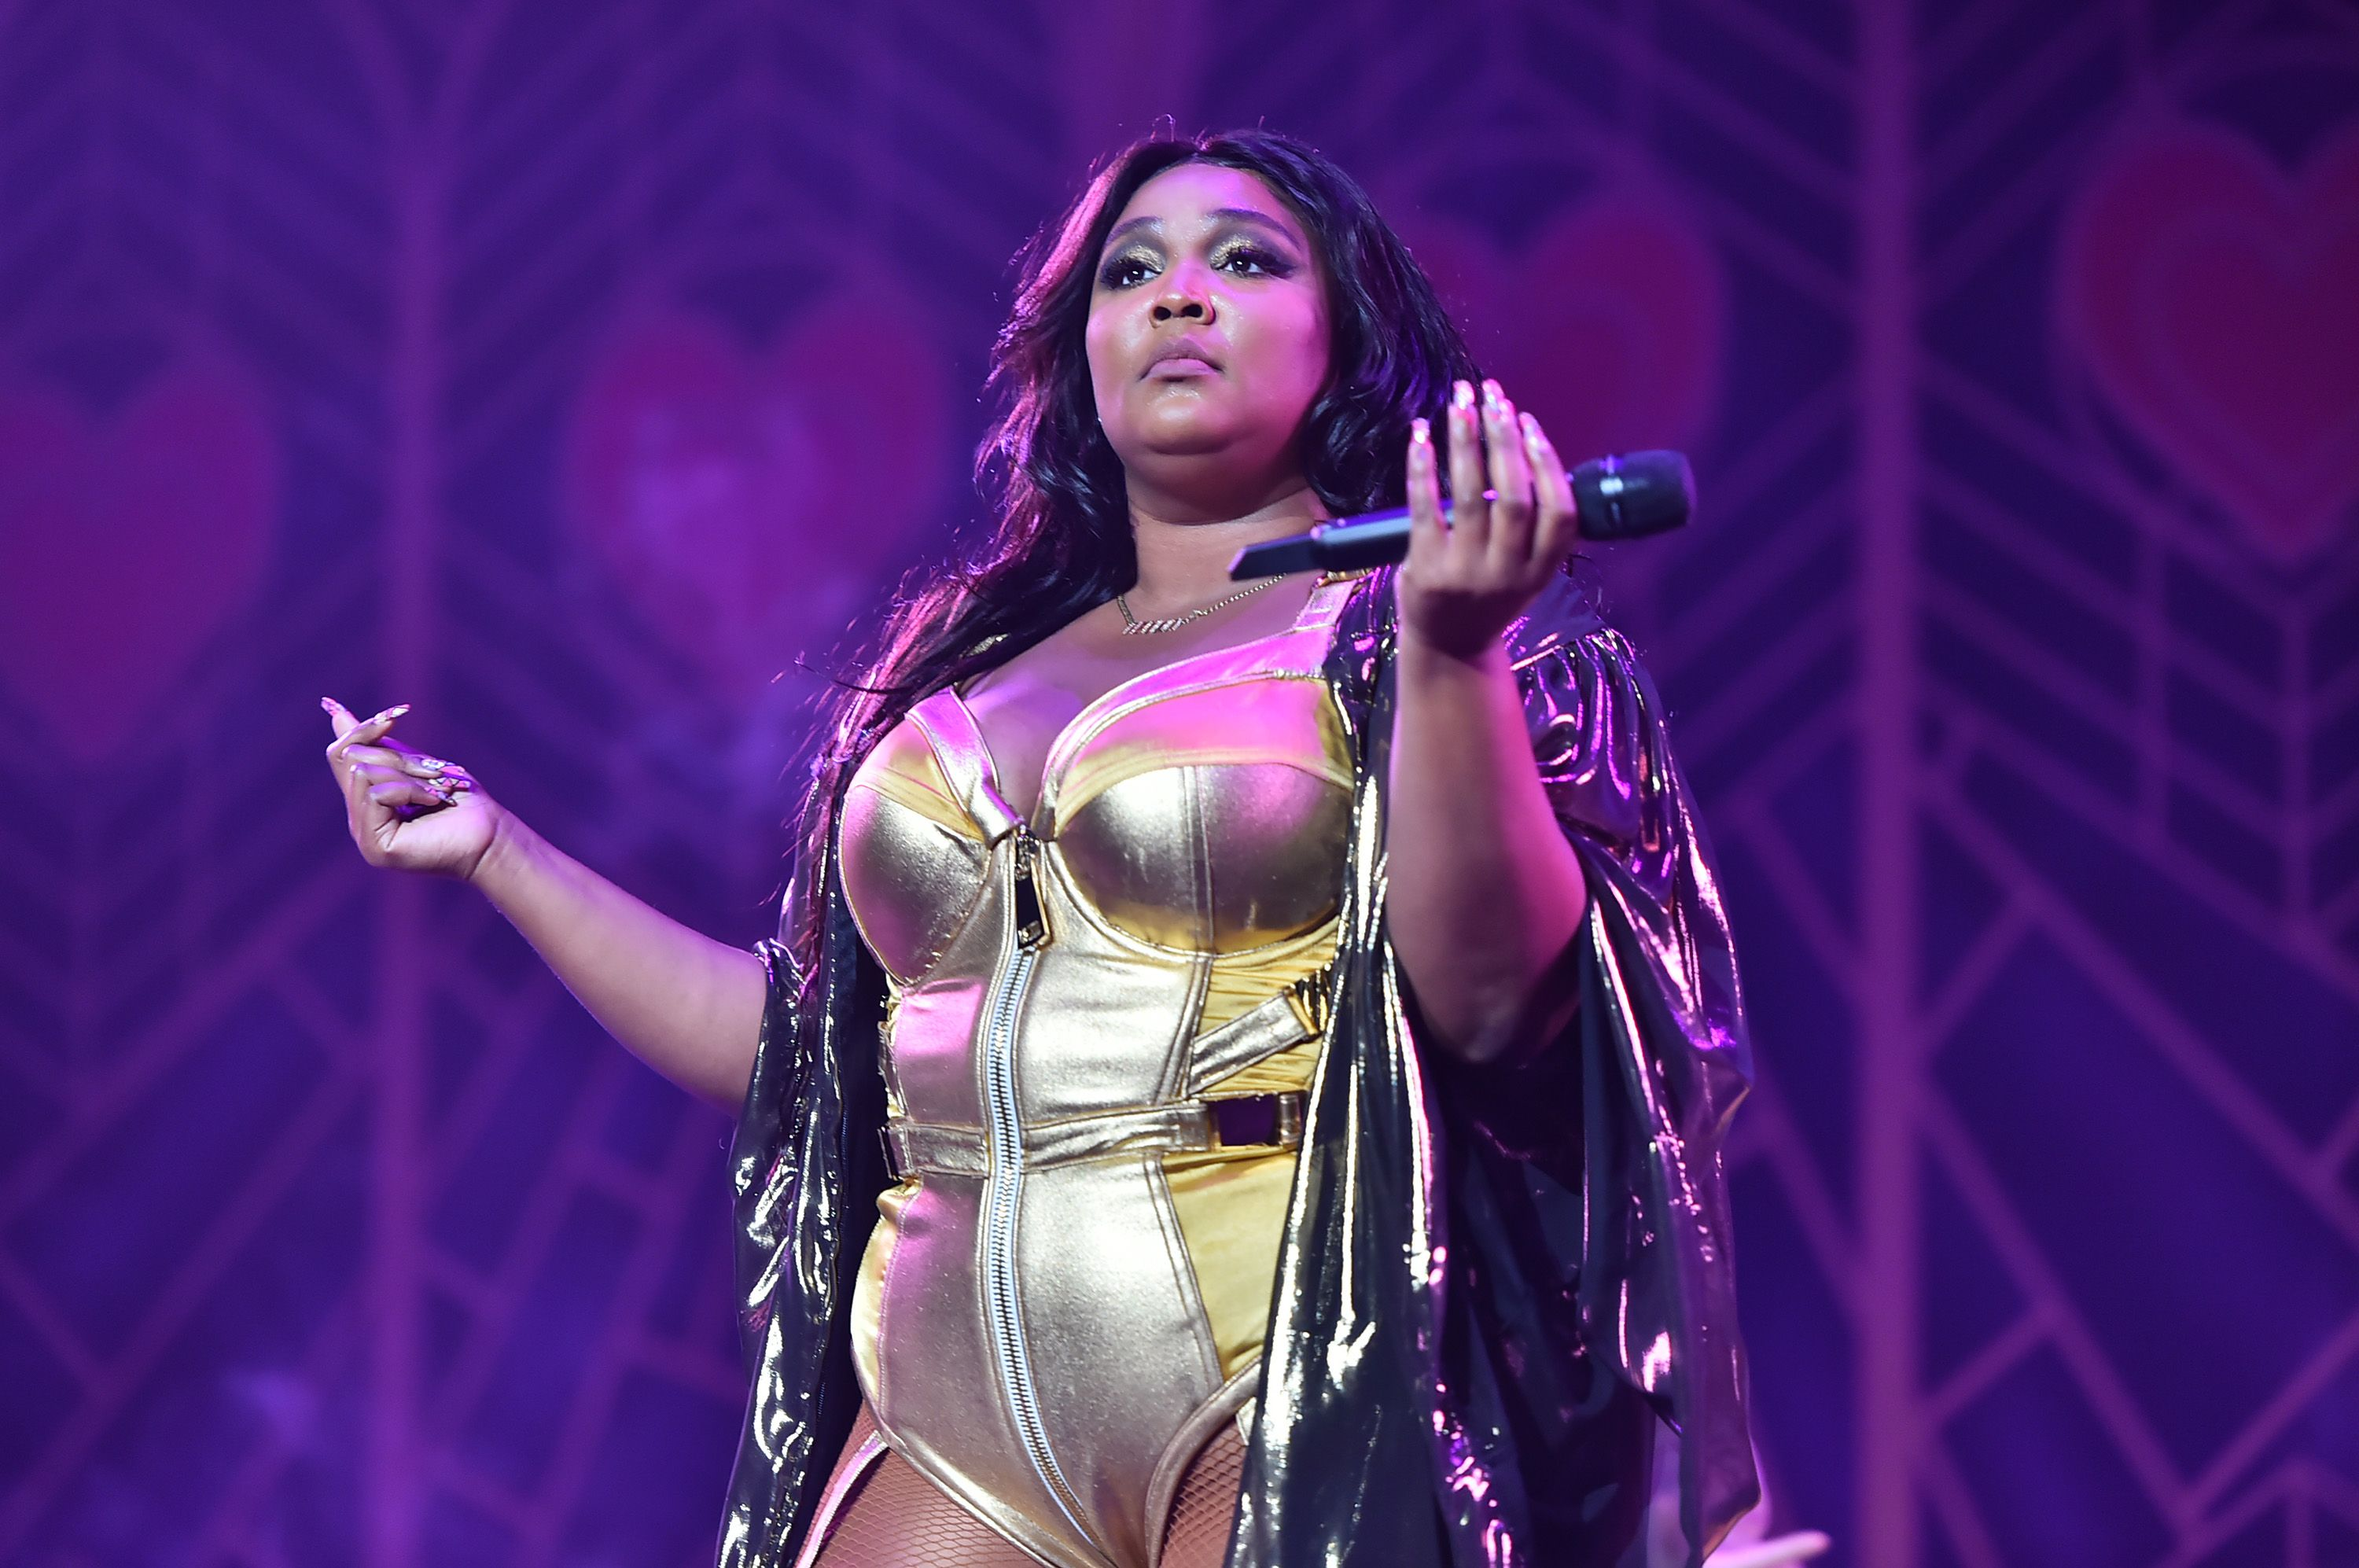 Lizzo performs at Radio City Music Hall on September 24, 2019, in New York City | Photo: Theo Wargo/Getty Images